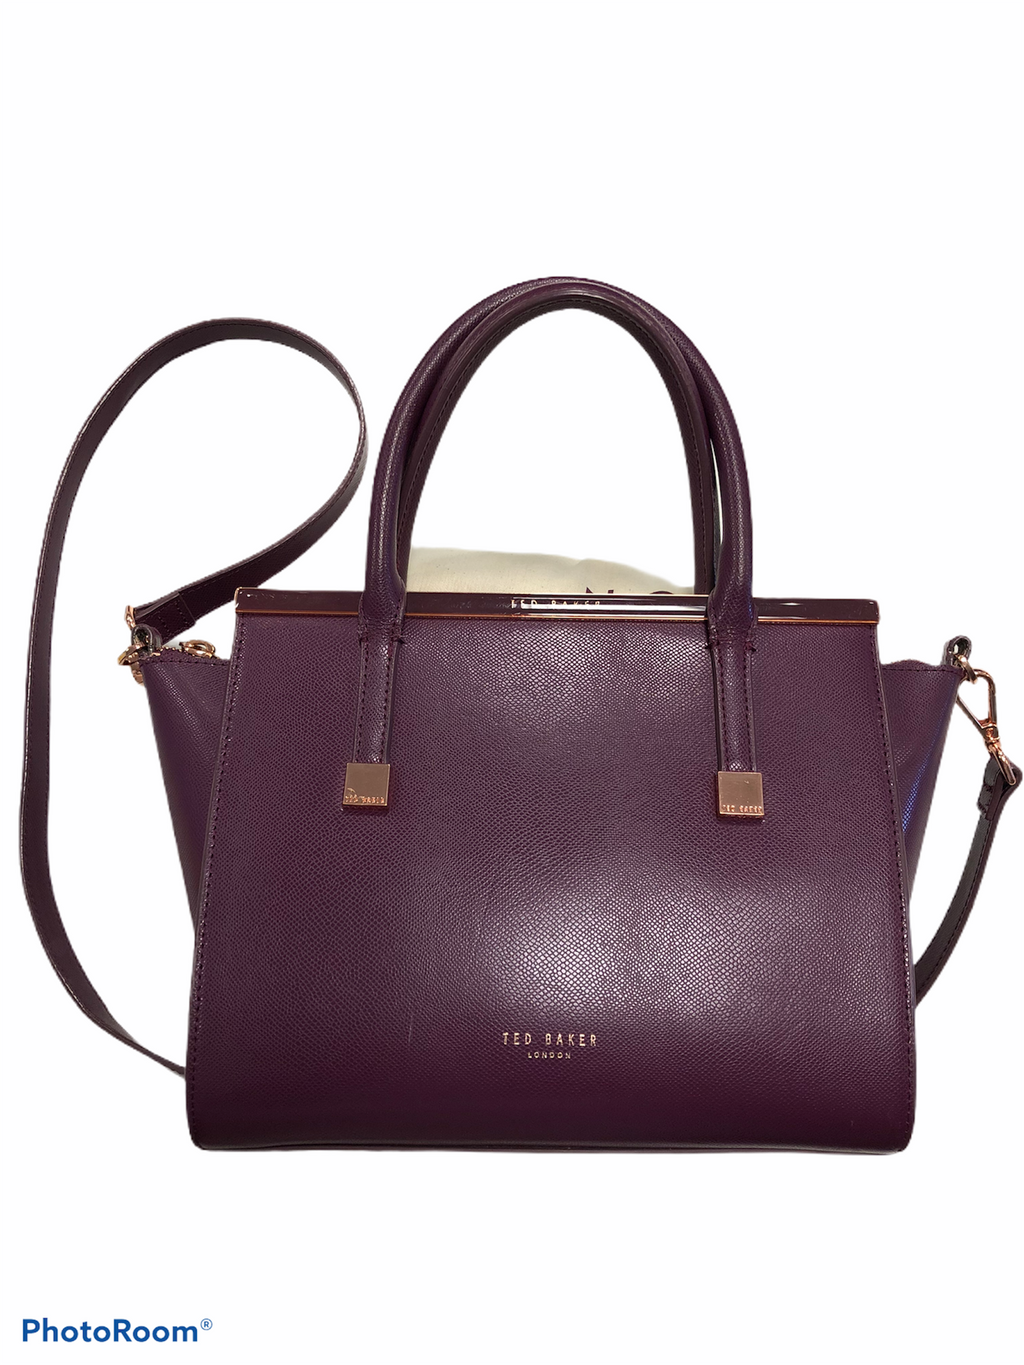 SALE ALERT - Handbag Designer By Ted Baker  Size: Medium